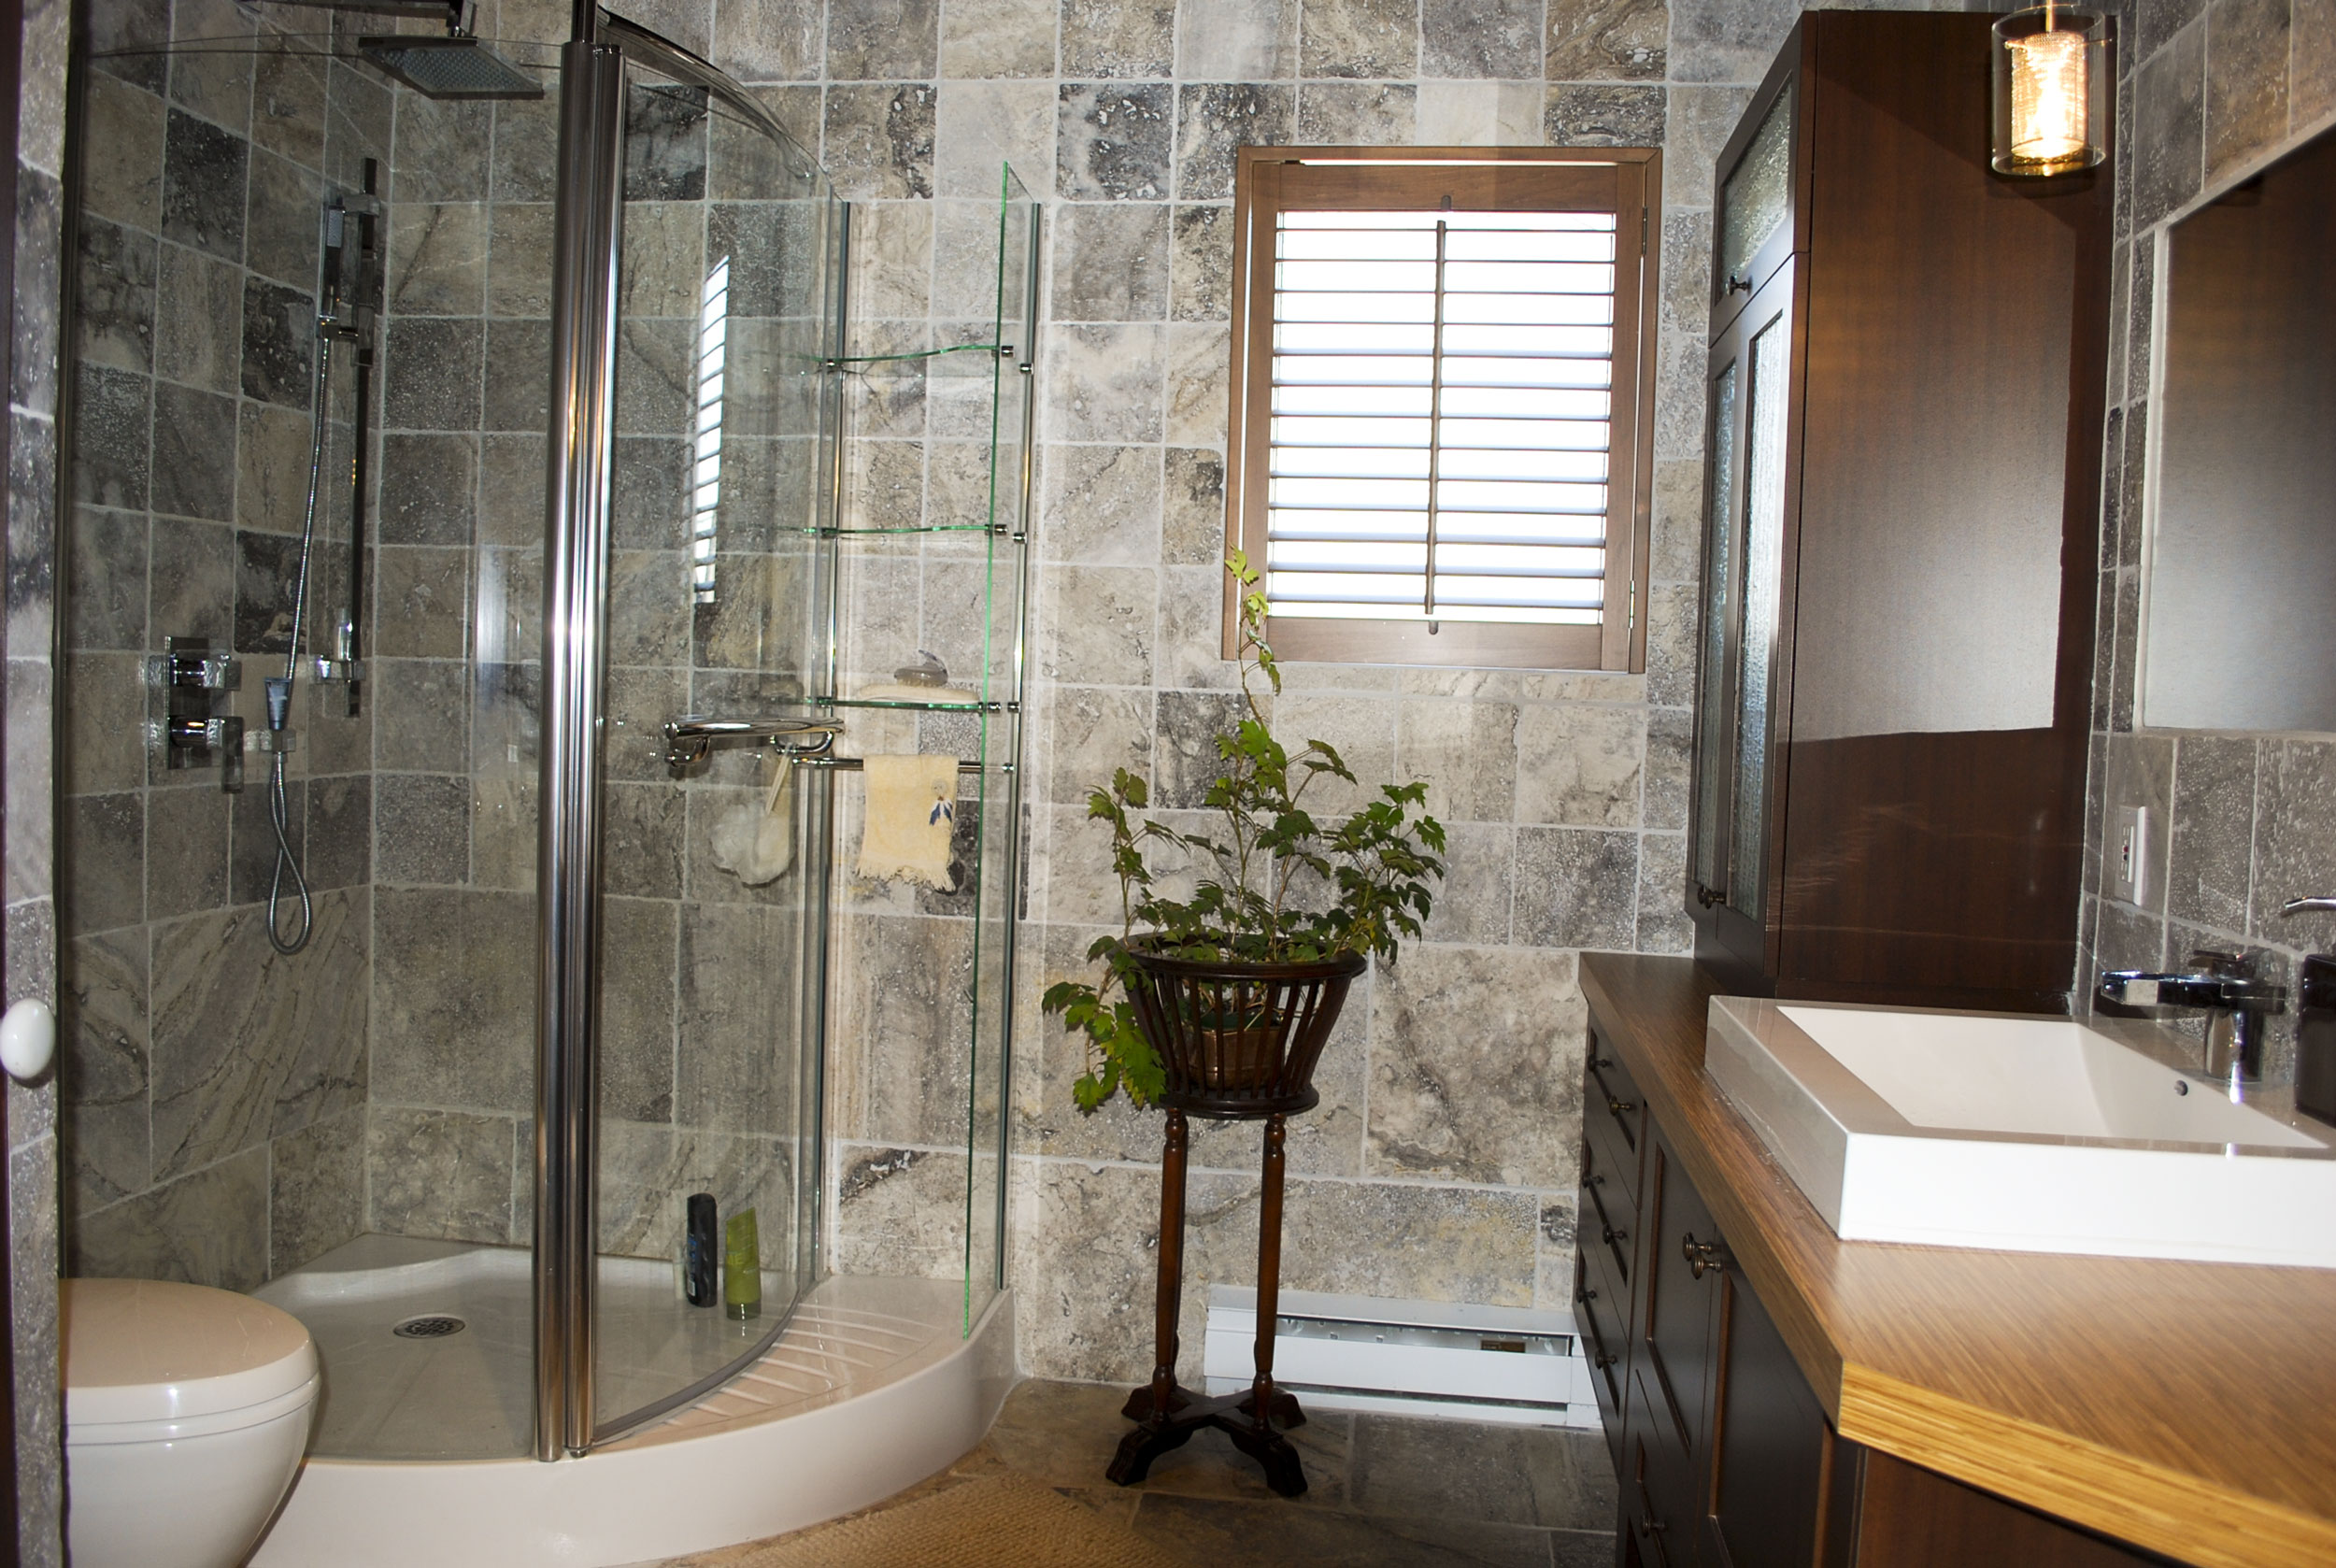 Design interieur salle de bain st jerome 4 laurentides for Decoration interieur salle de bain